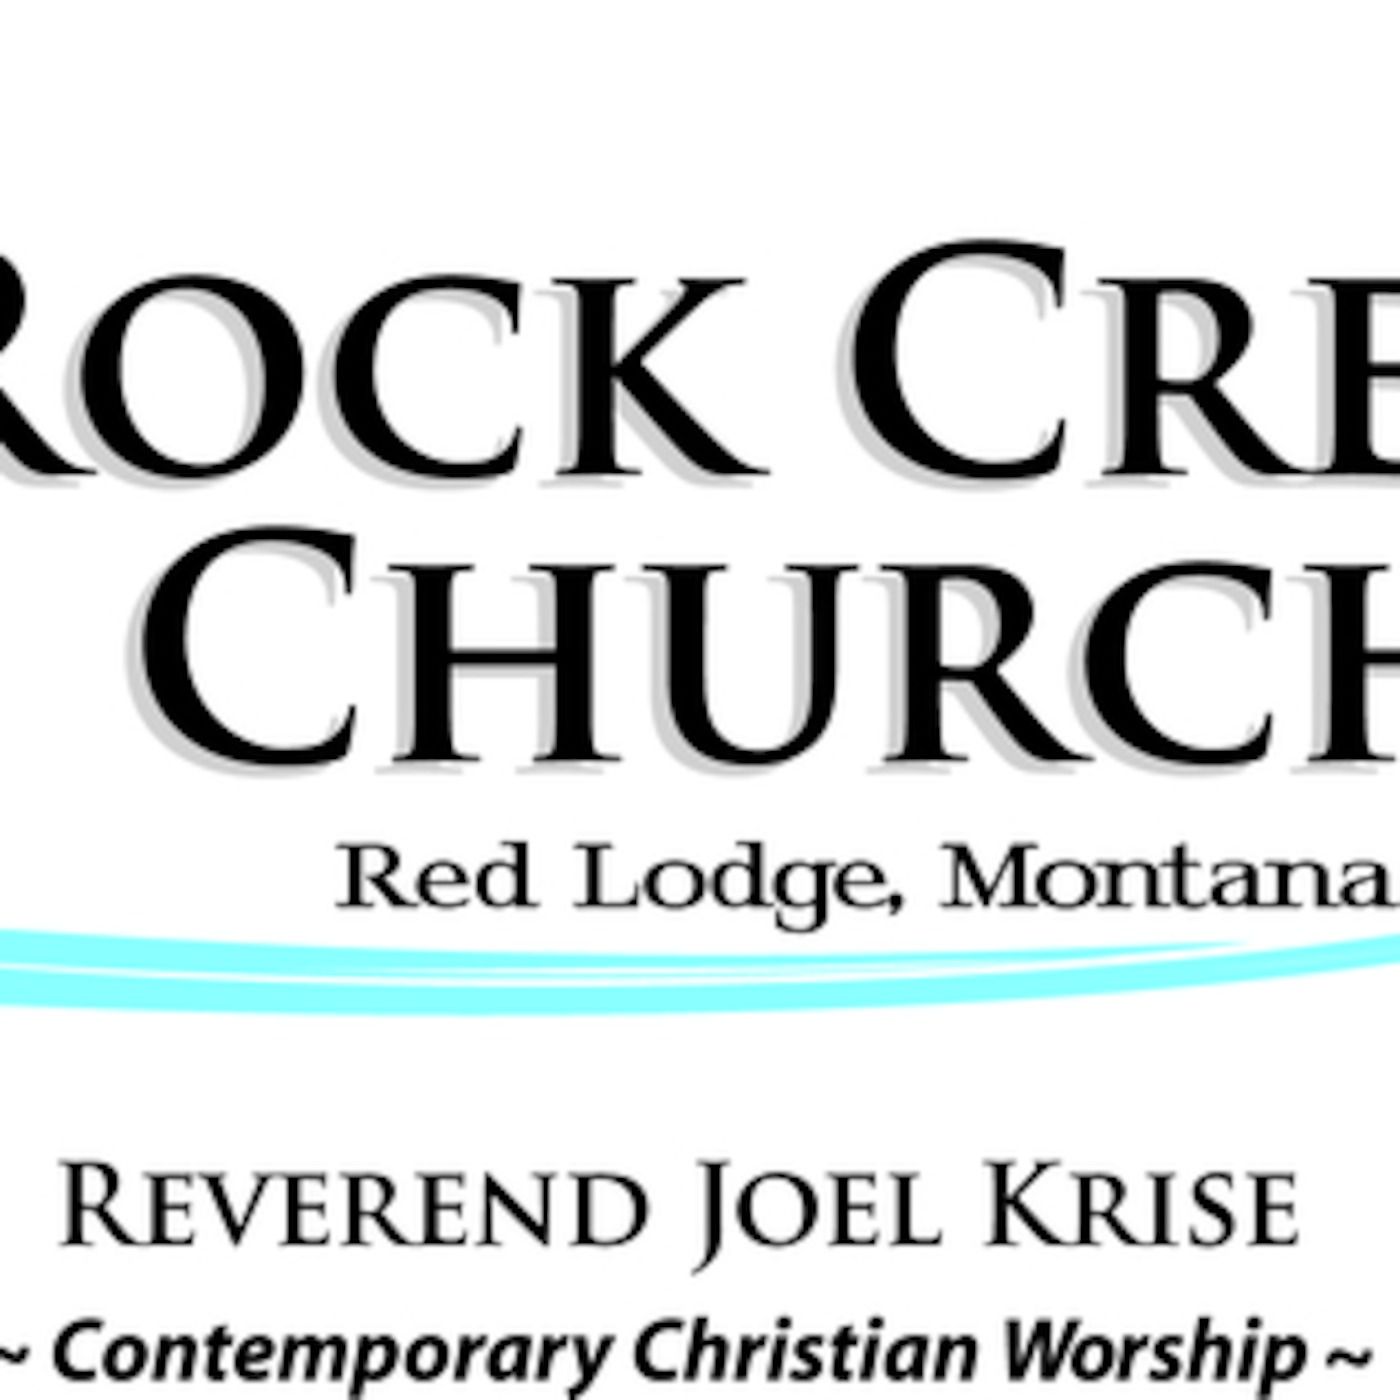 Rock Creek Church's Podcast